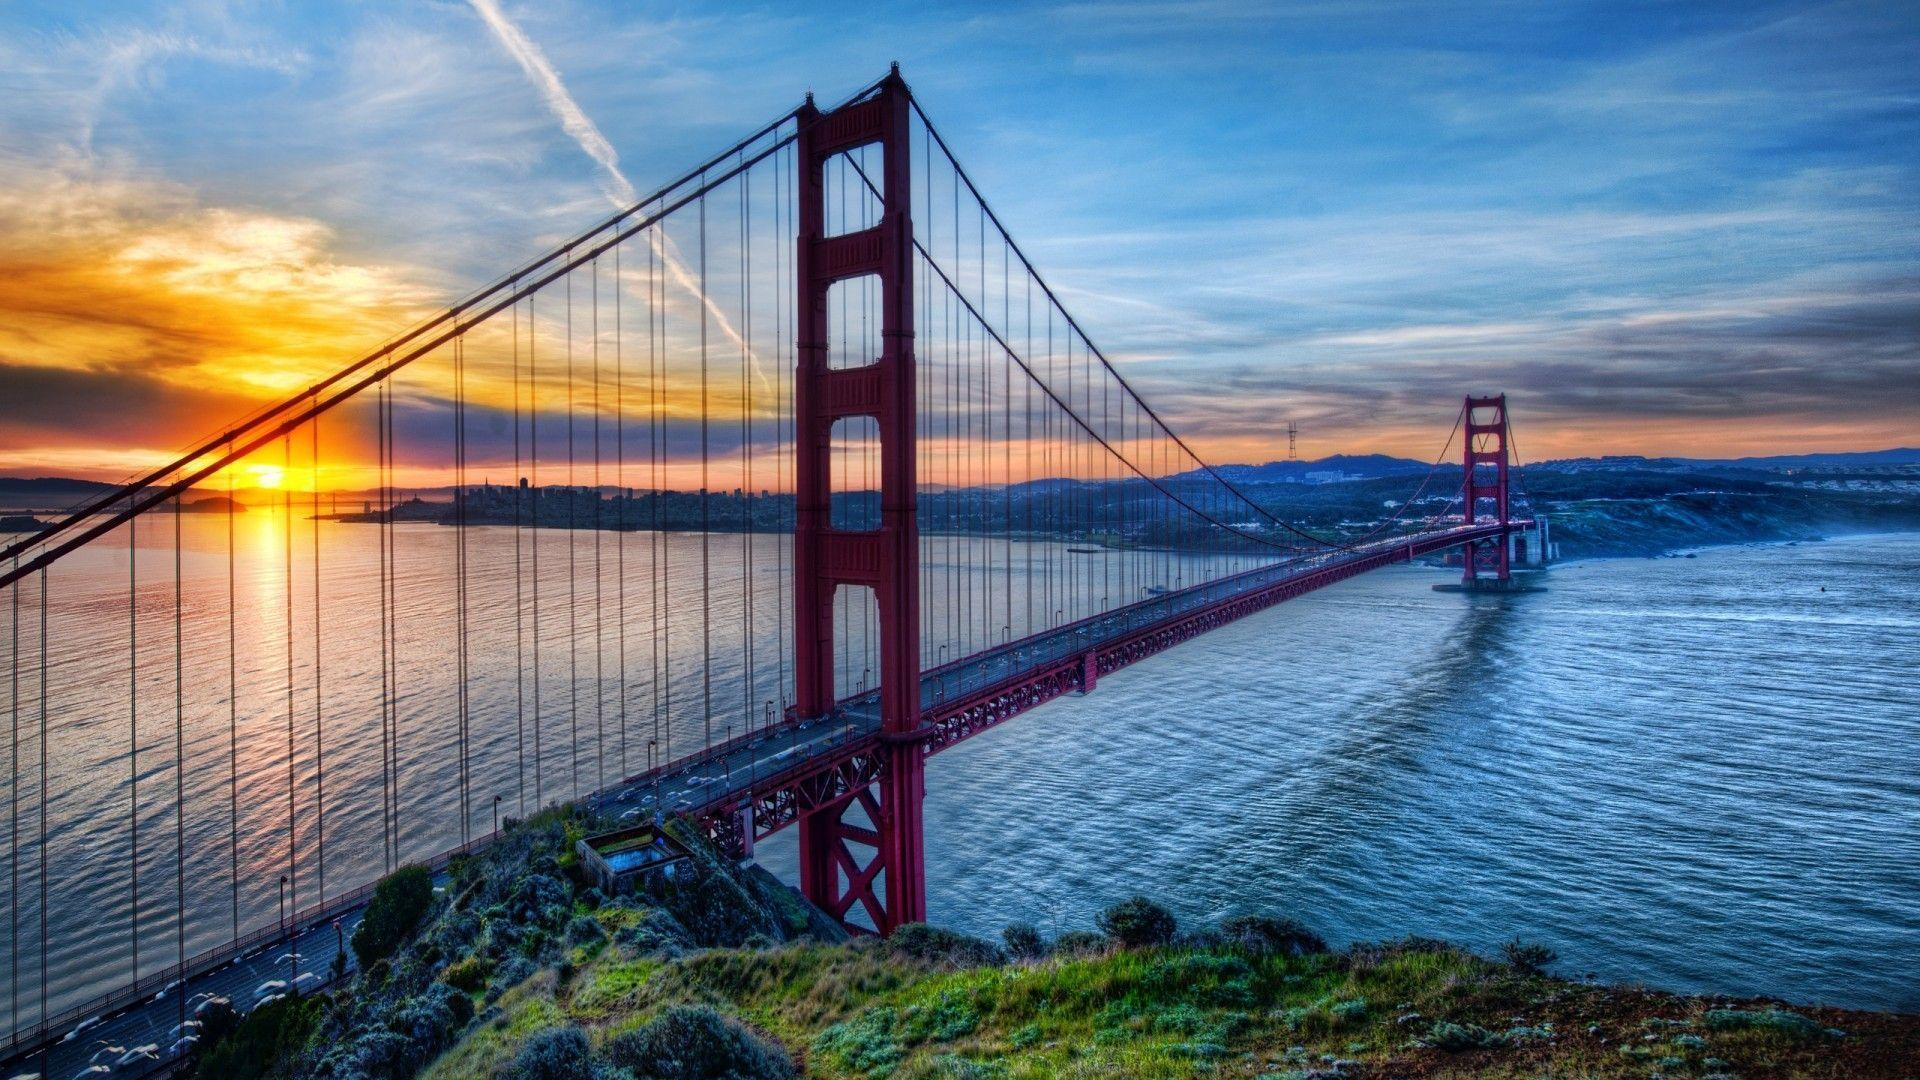 Golden Gate Bridge Wallpapers 14